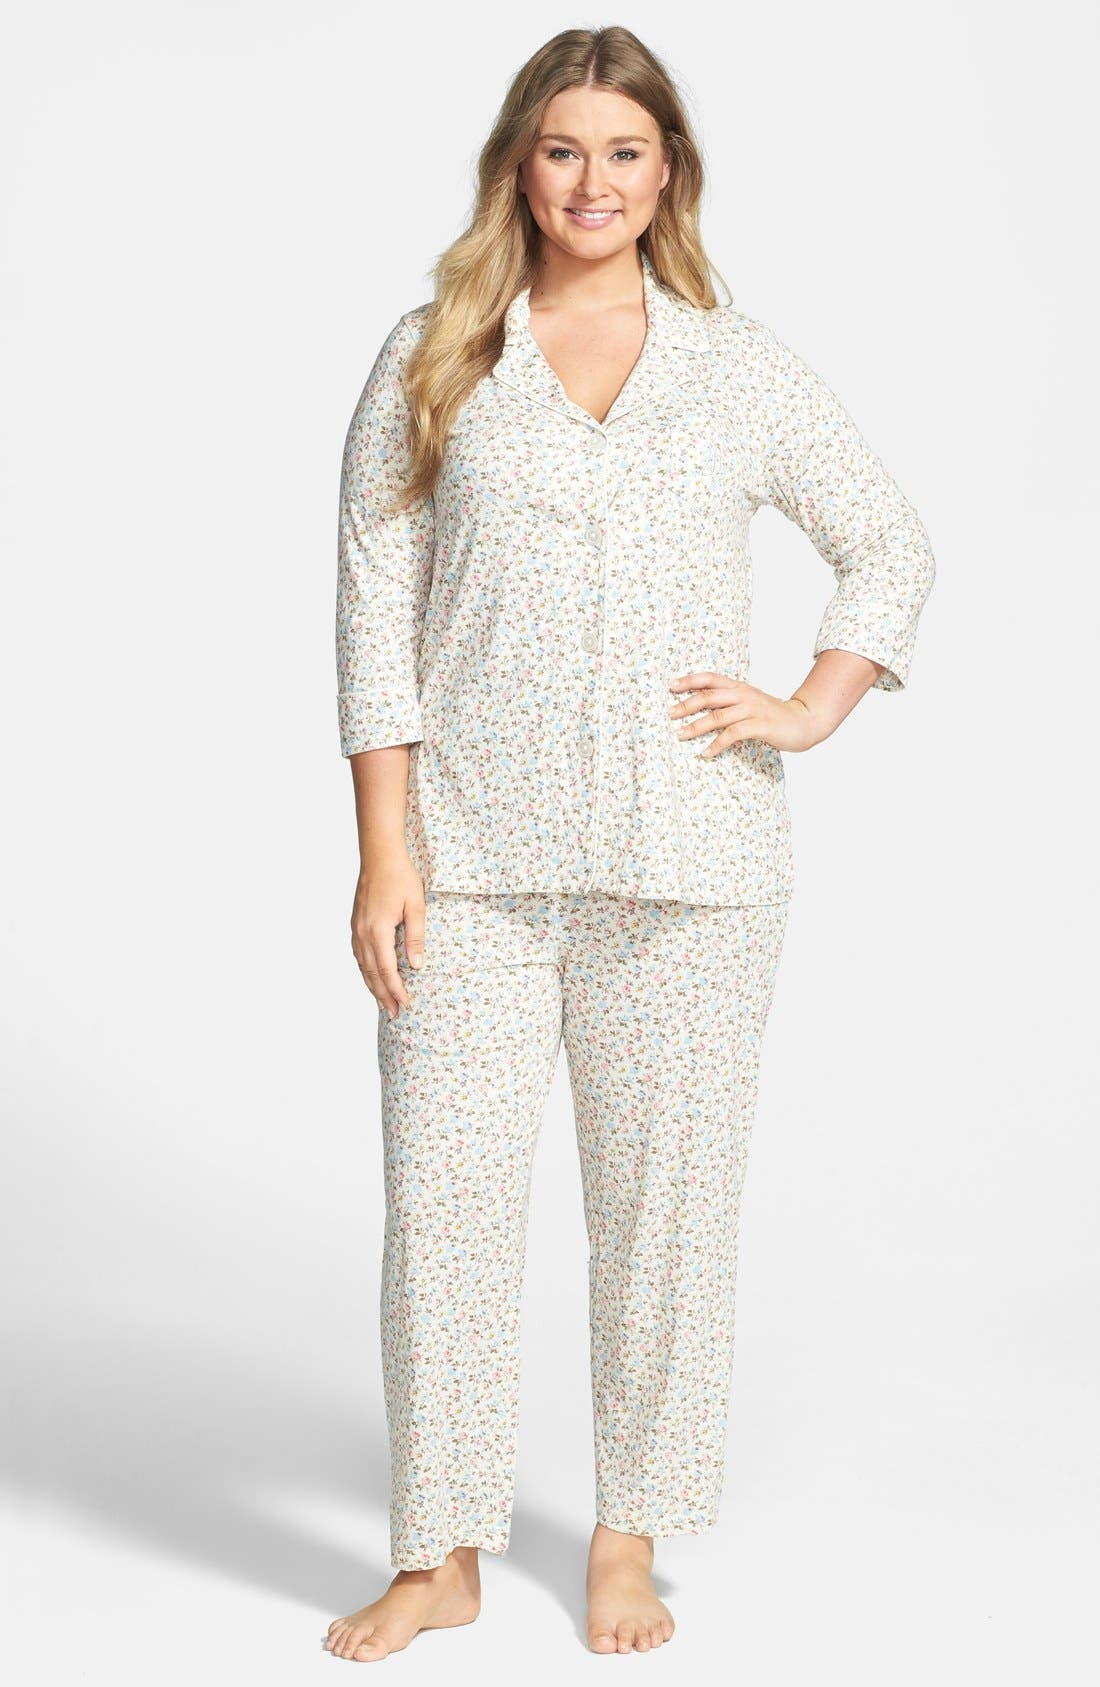 Alternate Image 1 Selected - Lauren Ralph Lauren Jersey Knit Pajamas (Plus Size)